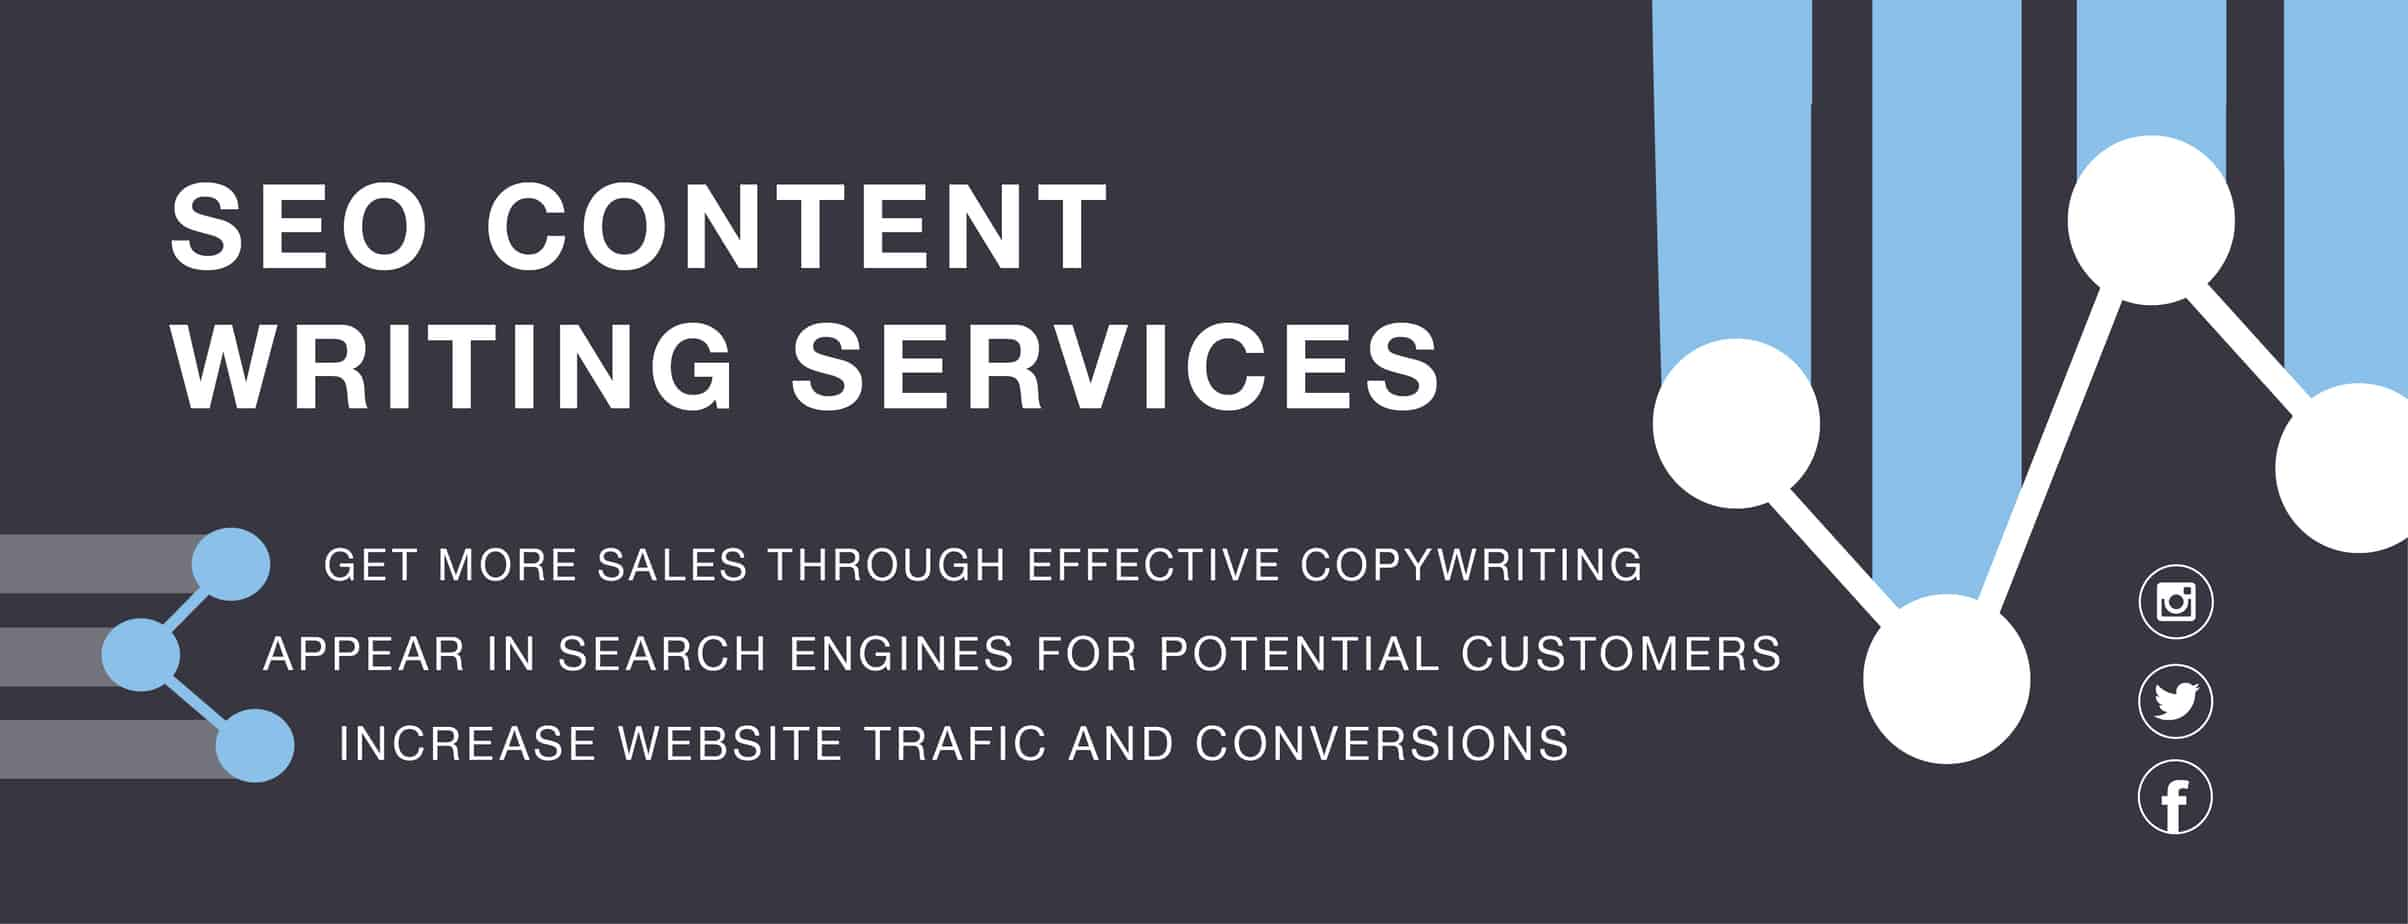 content writing company in india